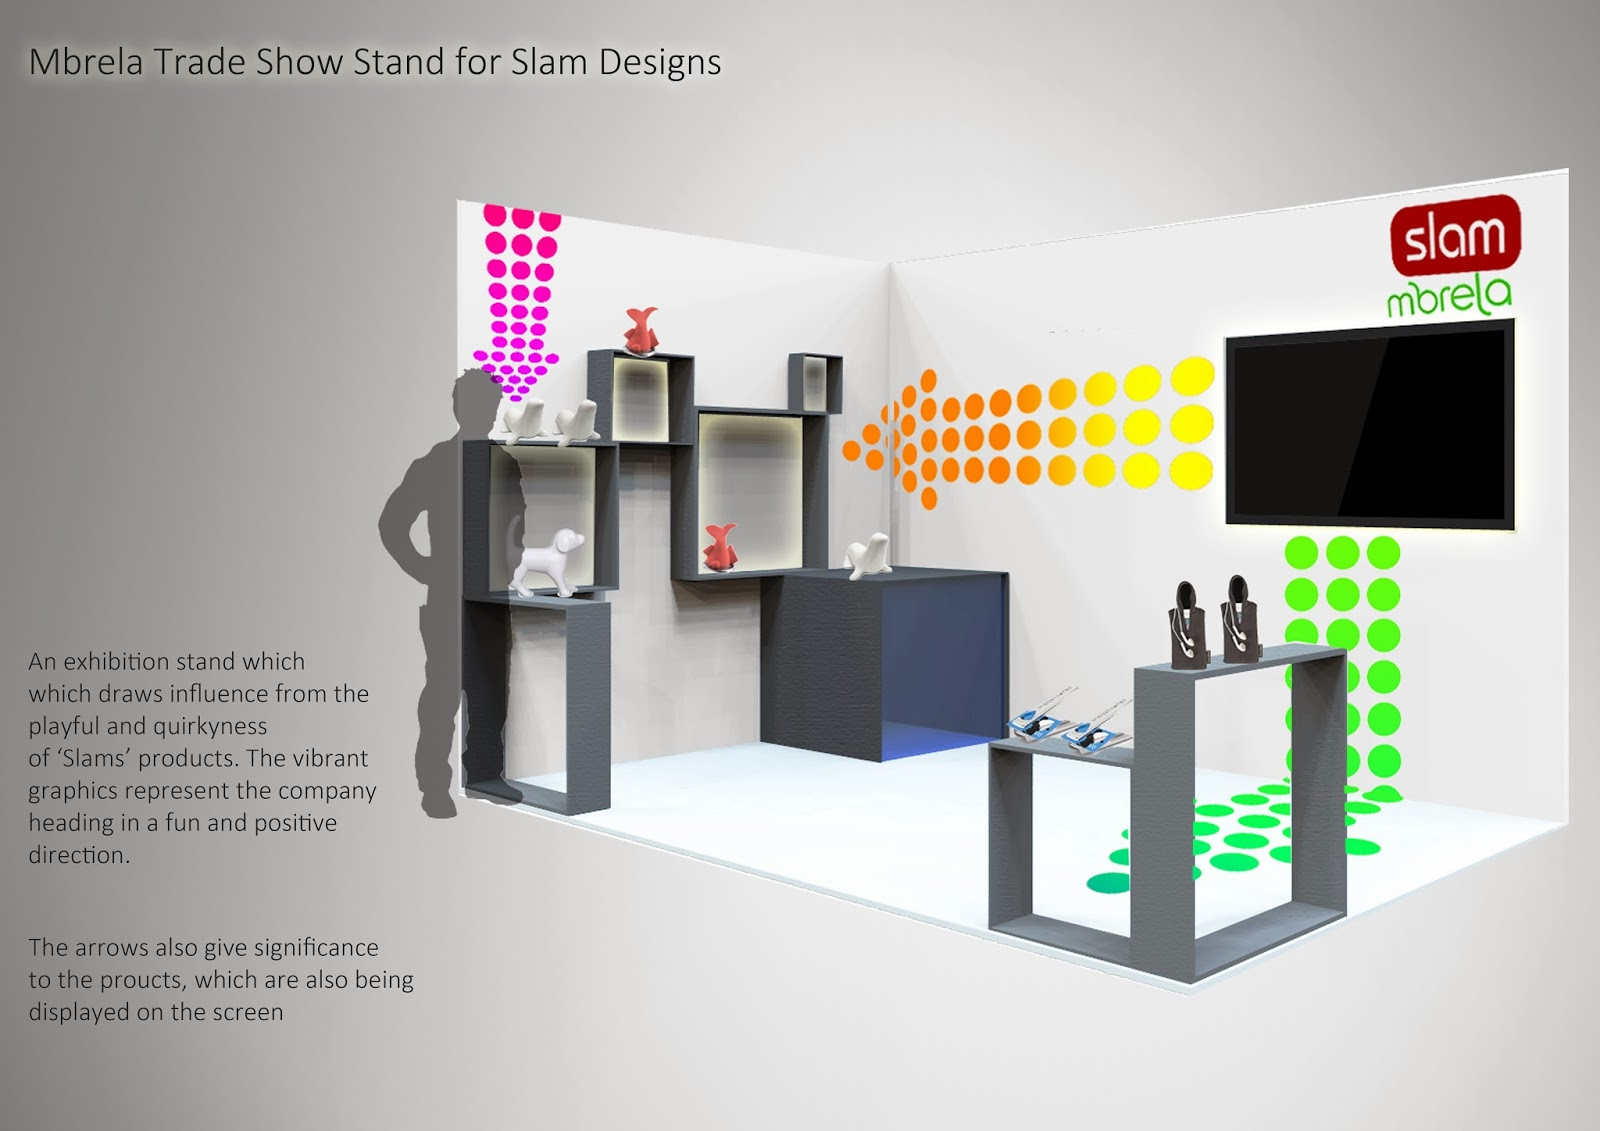 Modern Exhibition Stand Up : Mbrela exhibition stand to showcase slam products